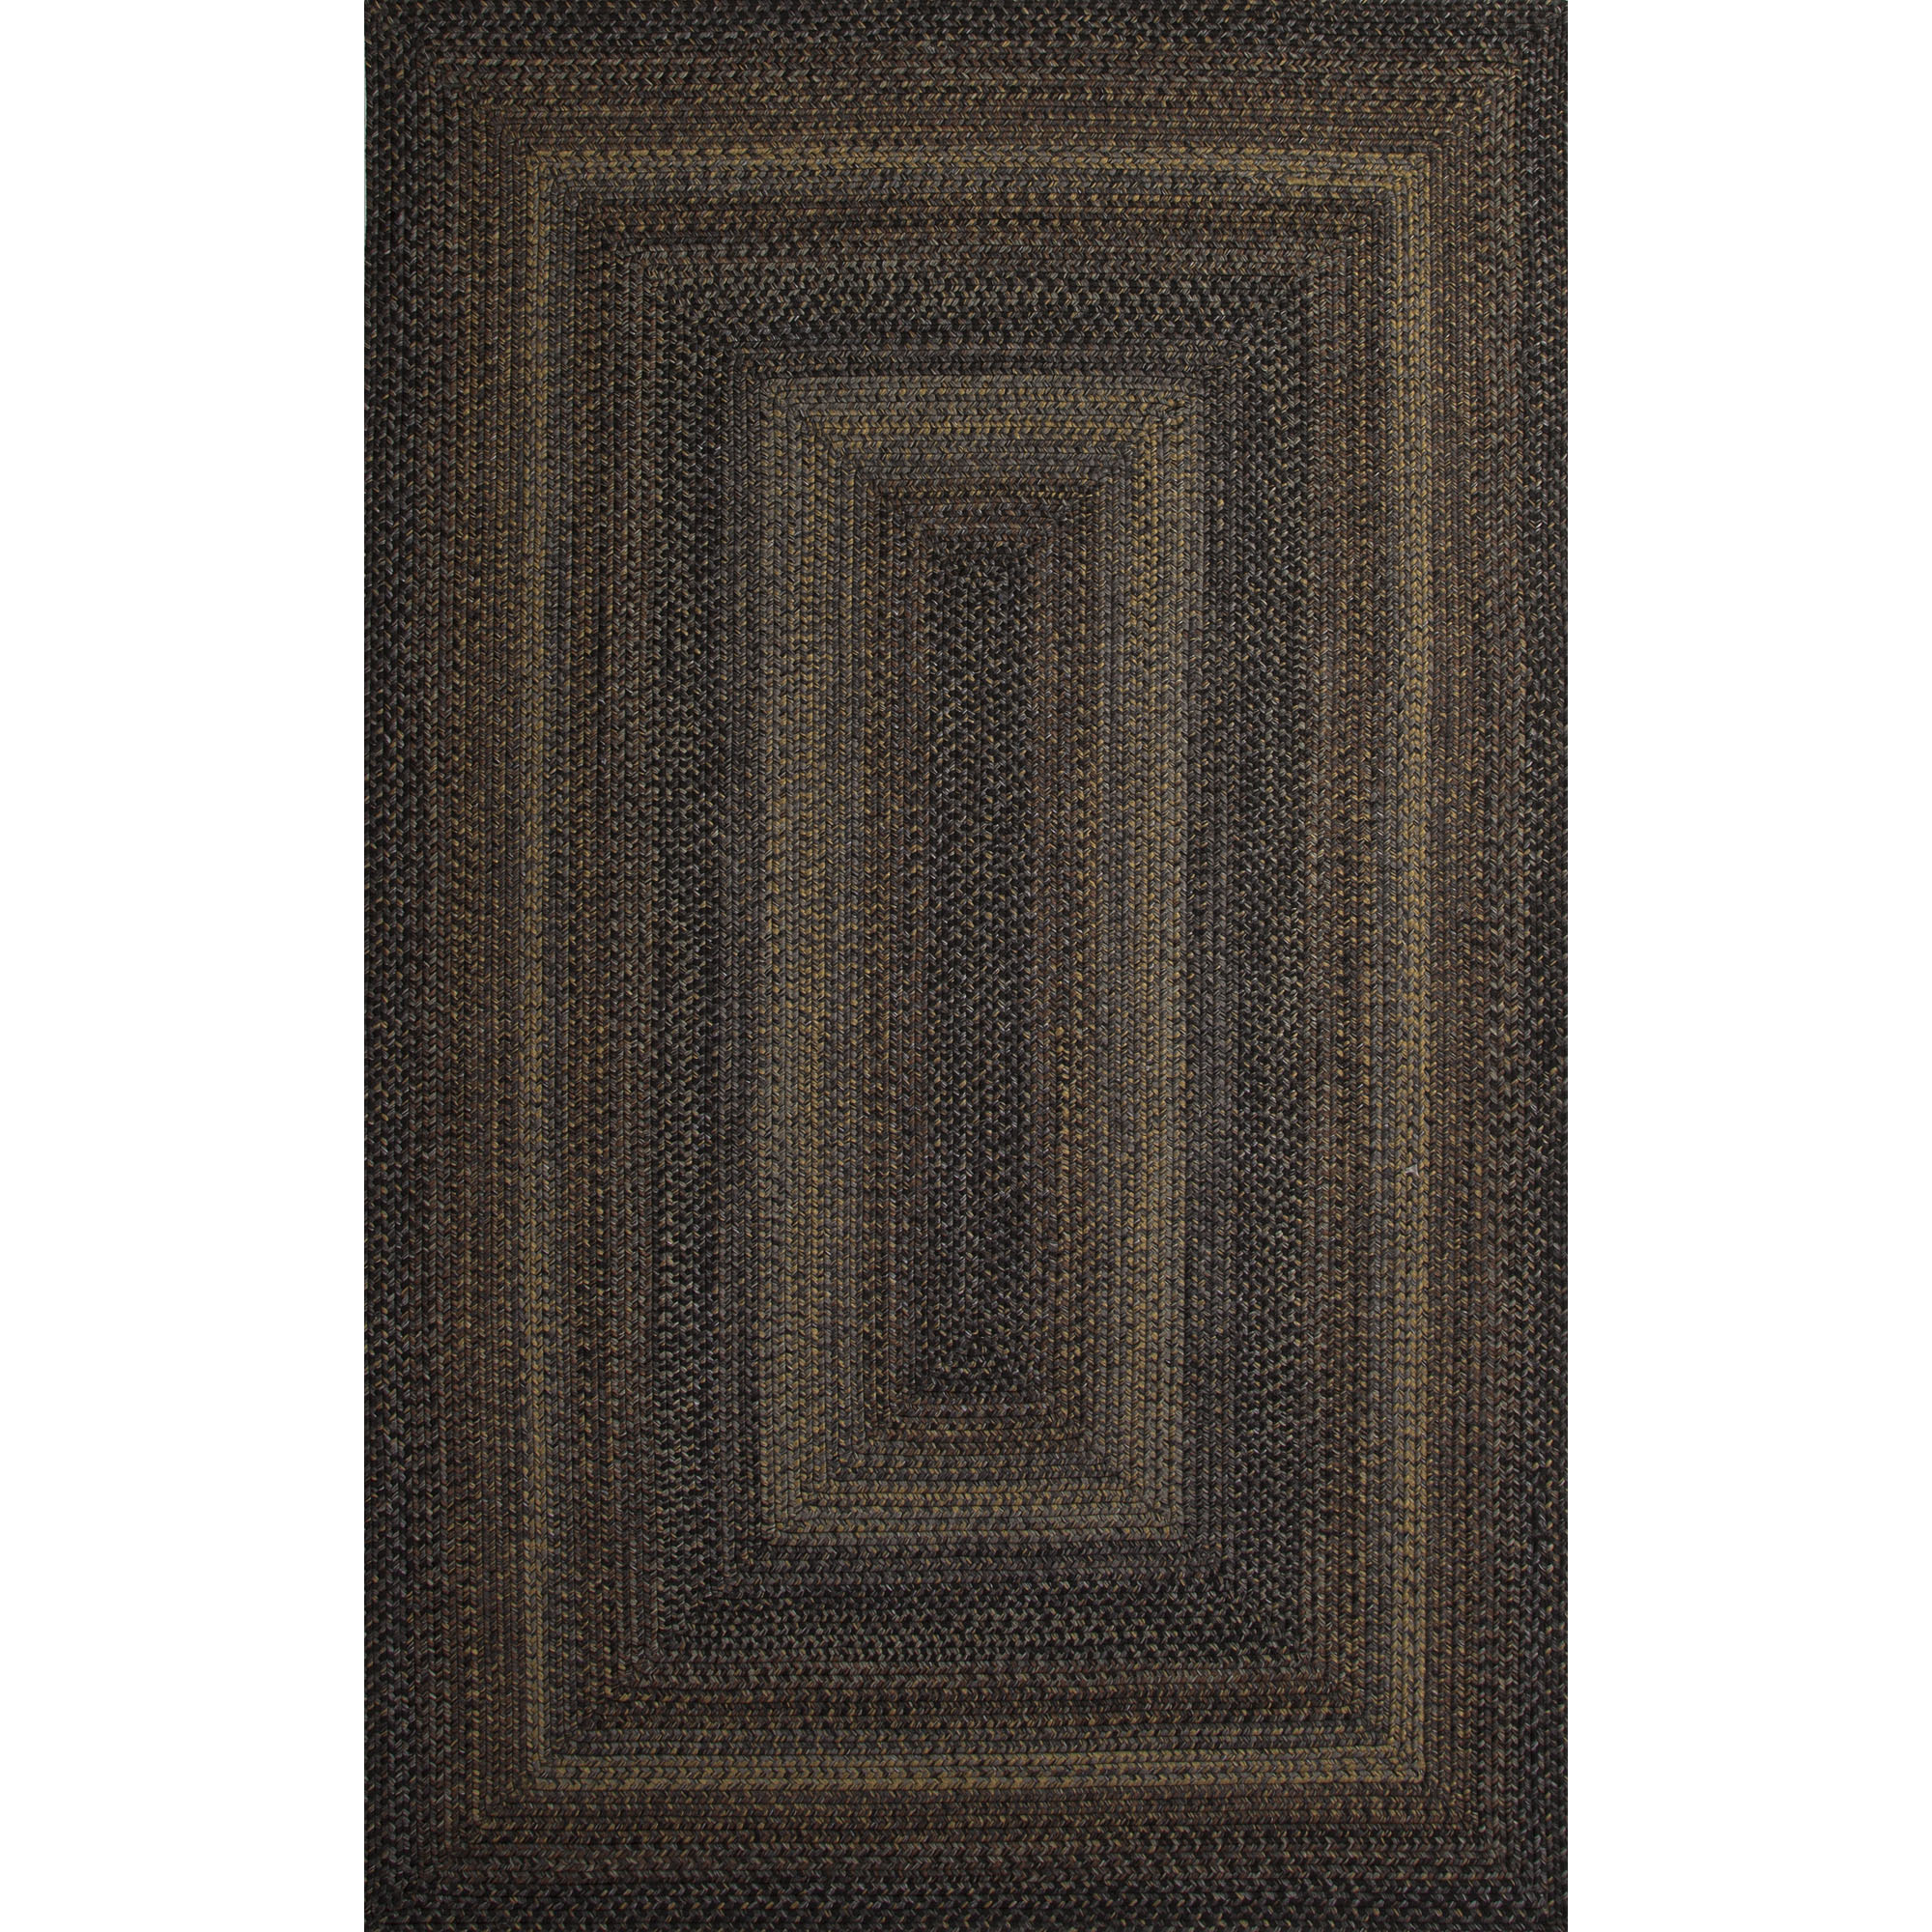 Ultra Durable Braided Rugs 4 x 6 Rug by JAIPUR Rugs at Sprintz Furniture